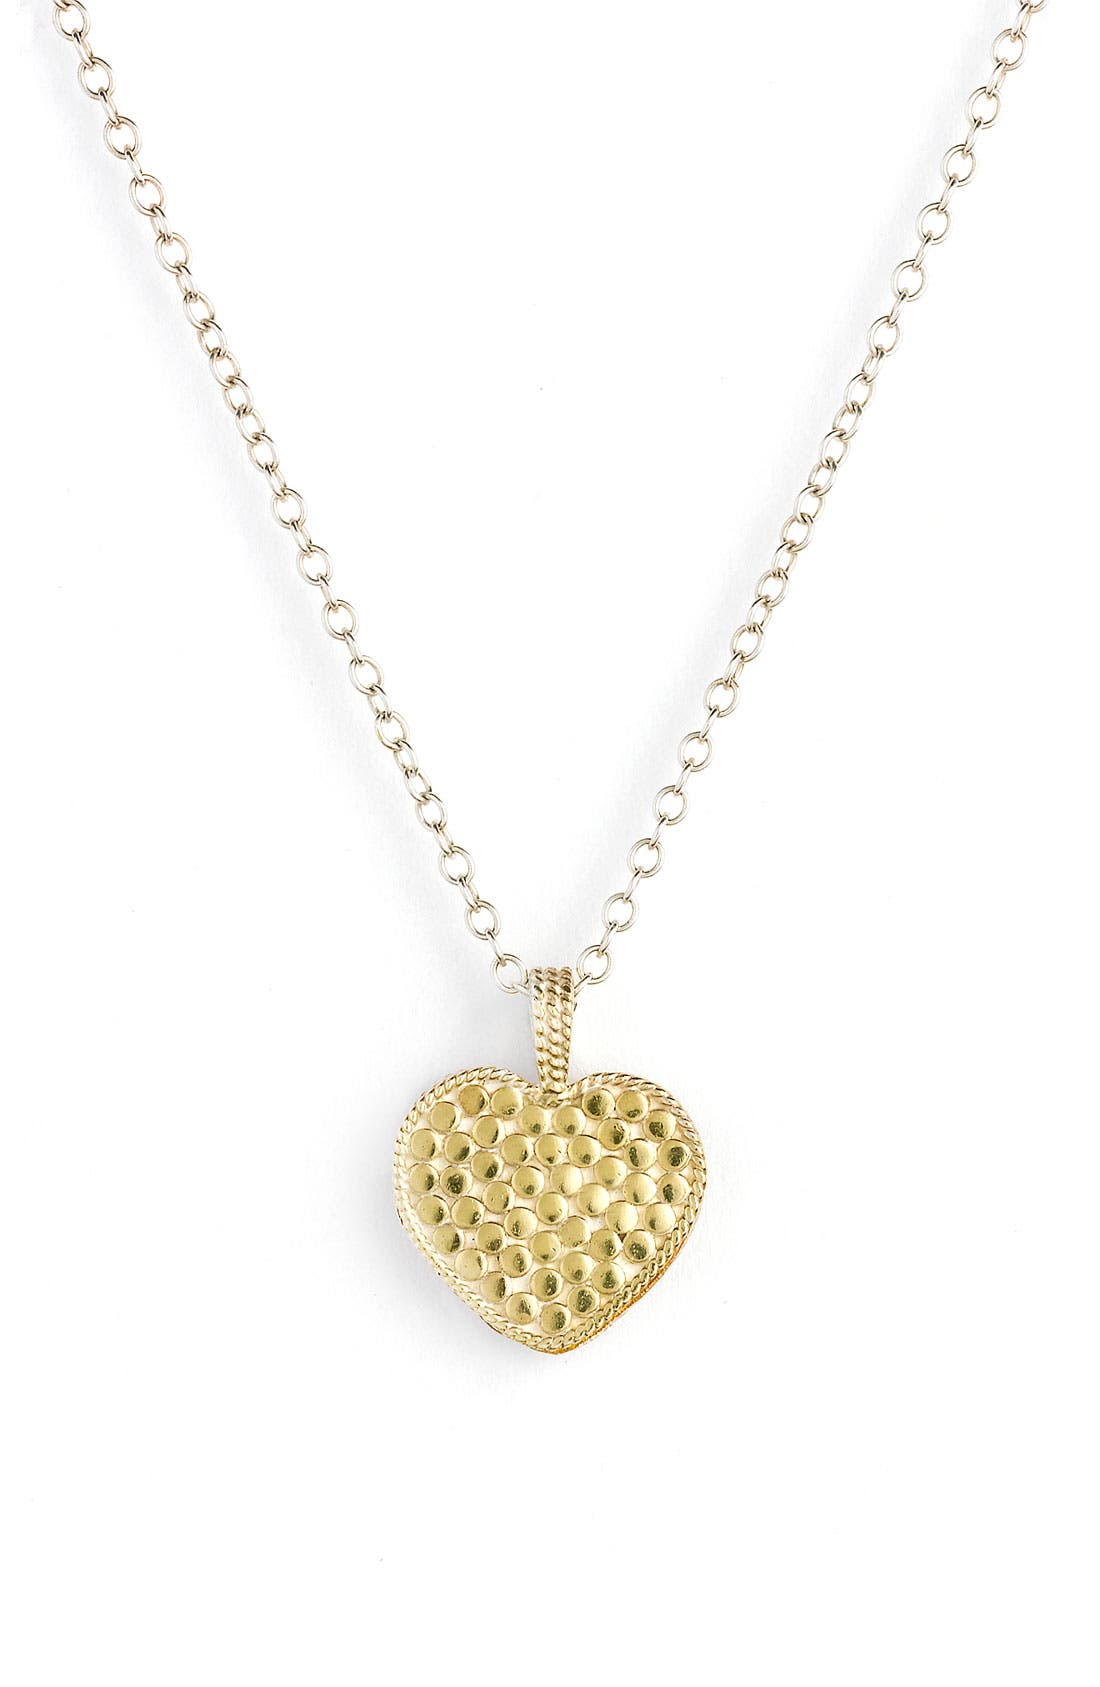 Alternate Image 1 Selected - Anna Beck 'Gili' Reversible Heart Pendant Necklace